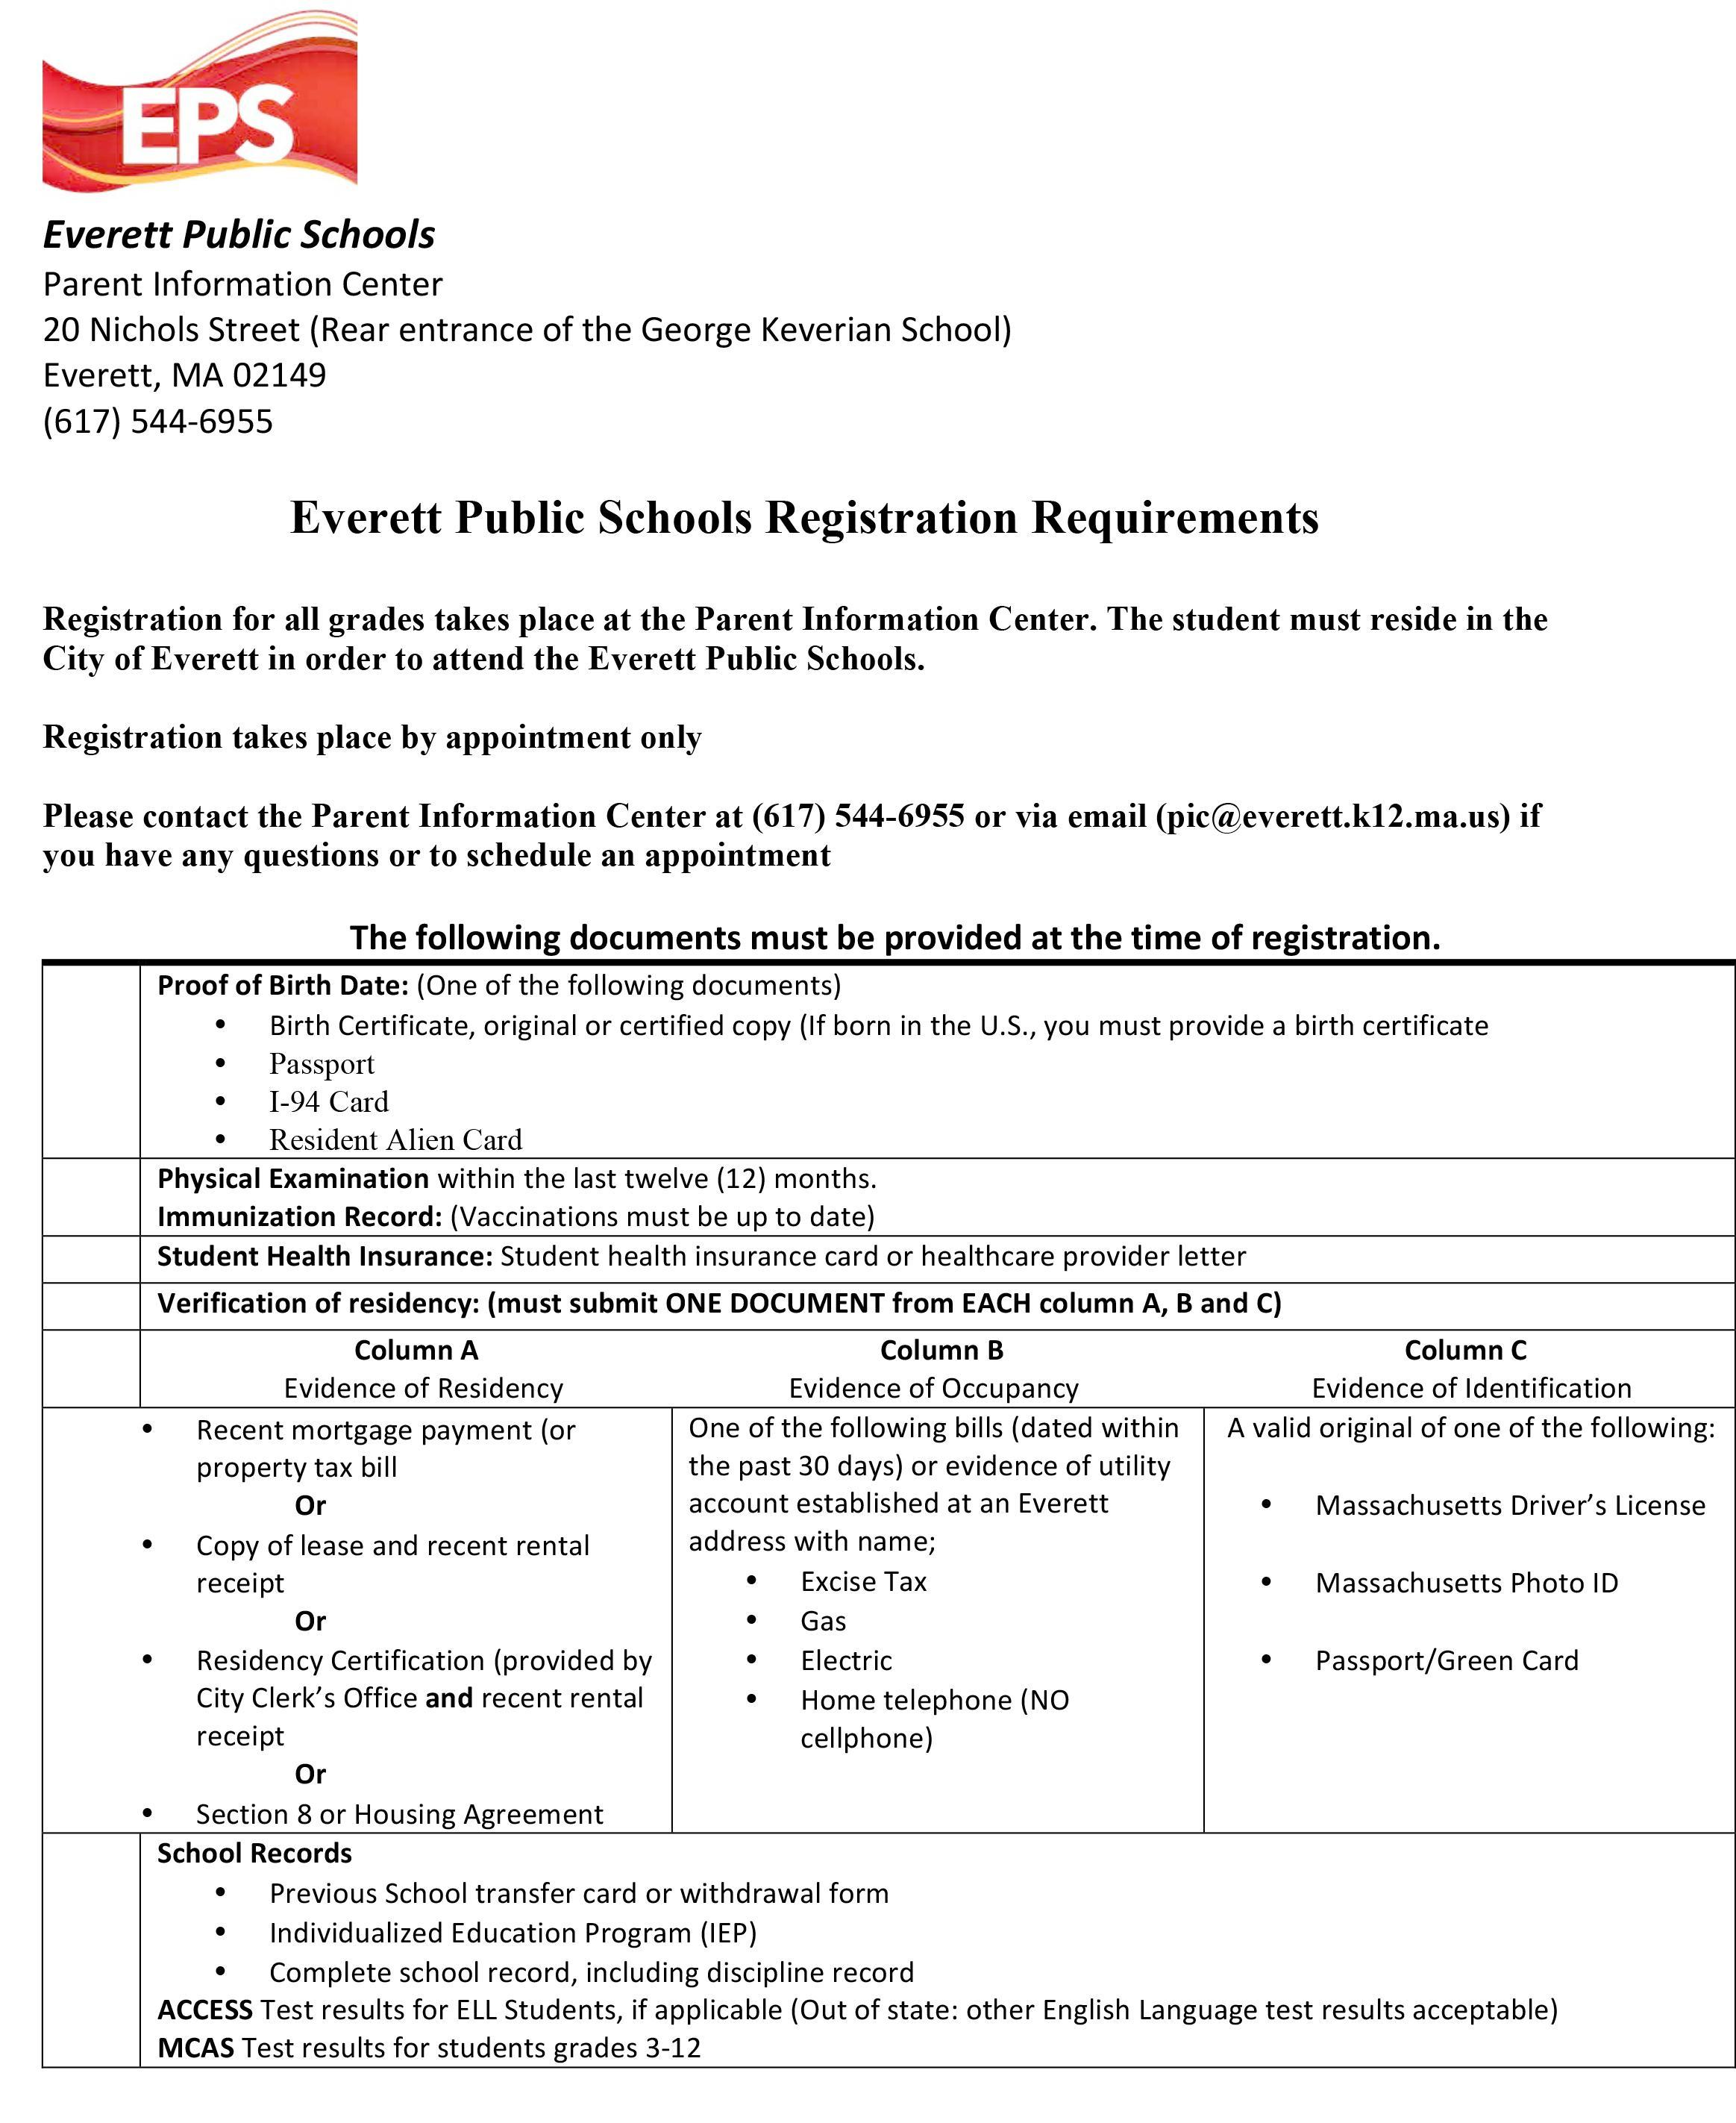 A form, in English, all text with EPS logo